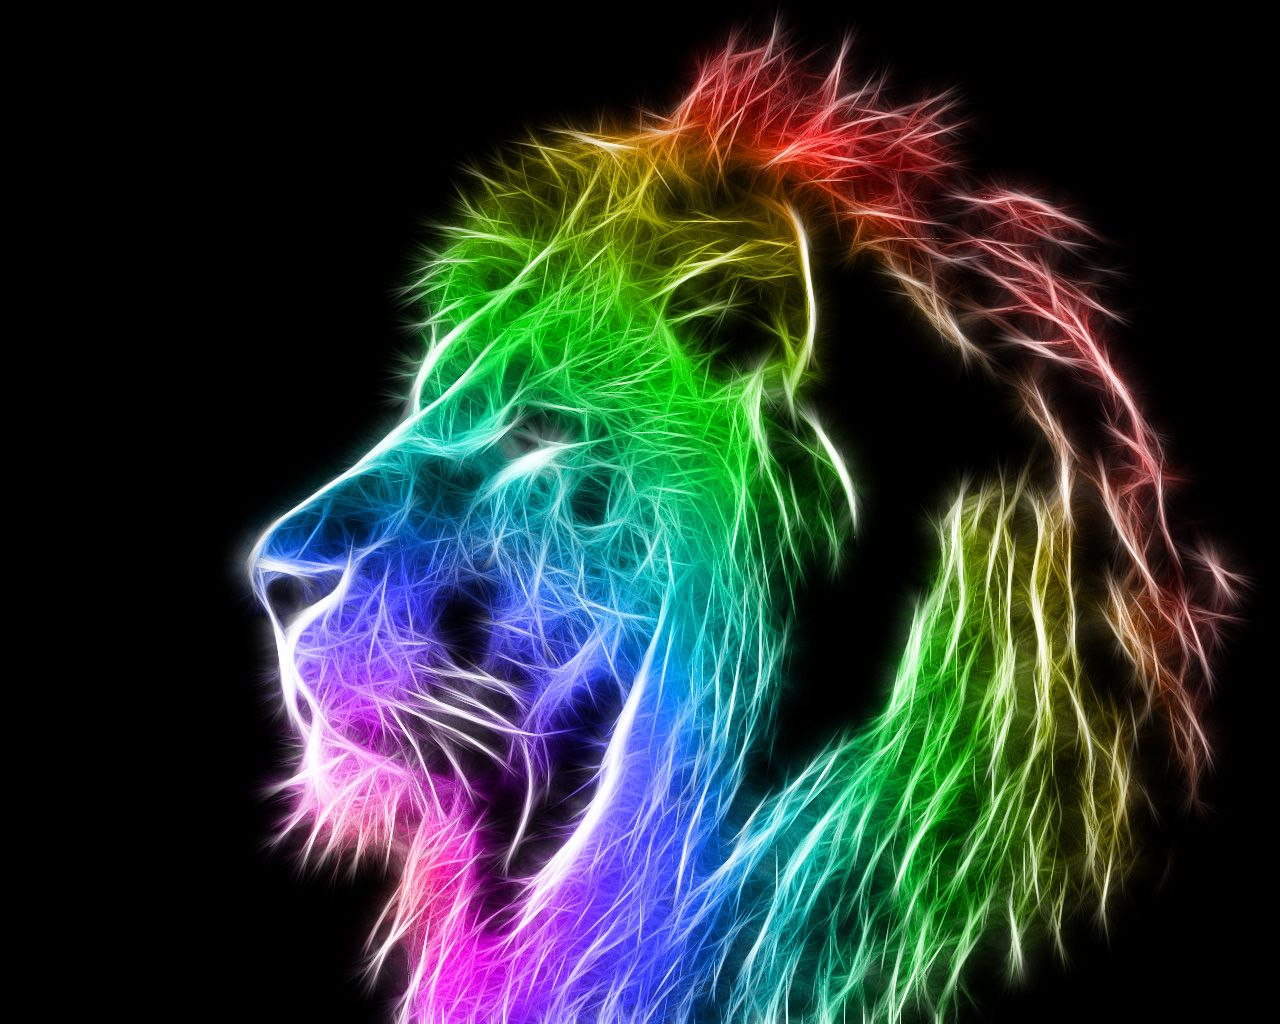 Colorful Lion Wallpaper 1280x1024 Id 17624 Rainbow Lion Colorful Lion Abstract Lion